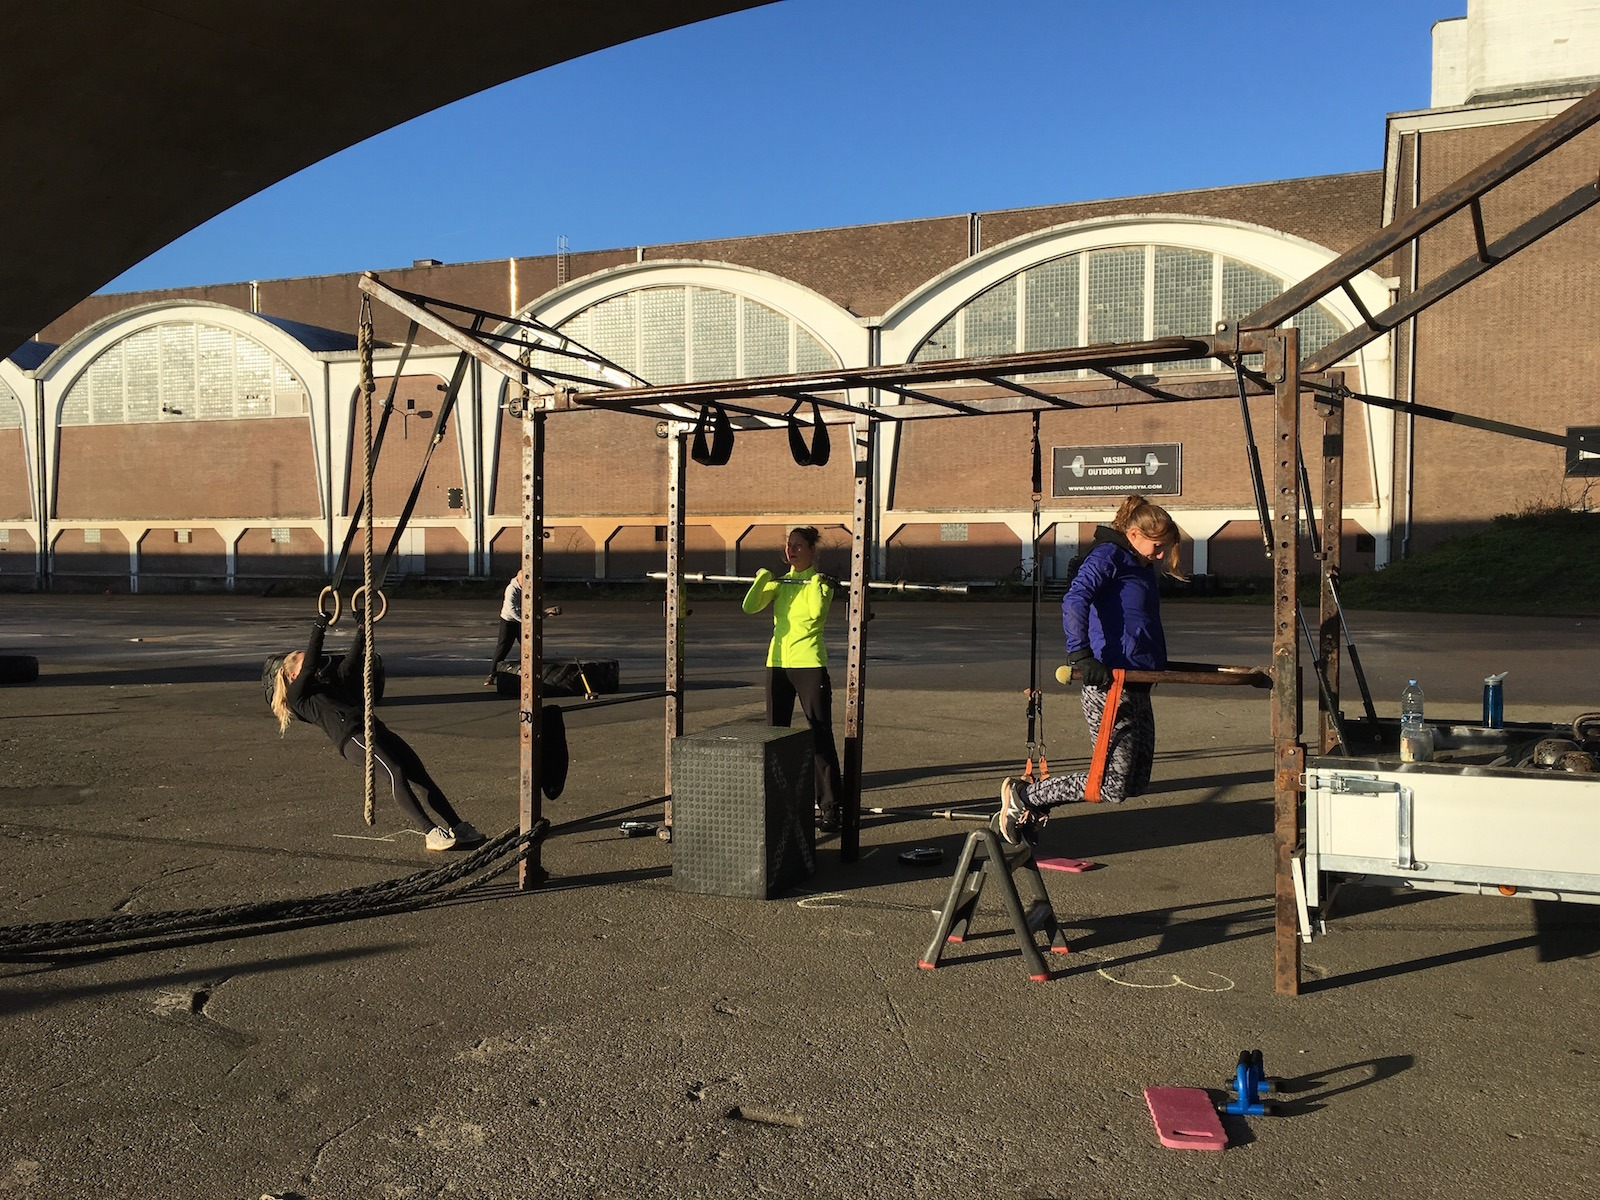 VASIM OUTDOOR GYM 17-dec-2017